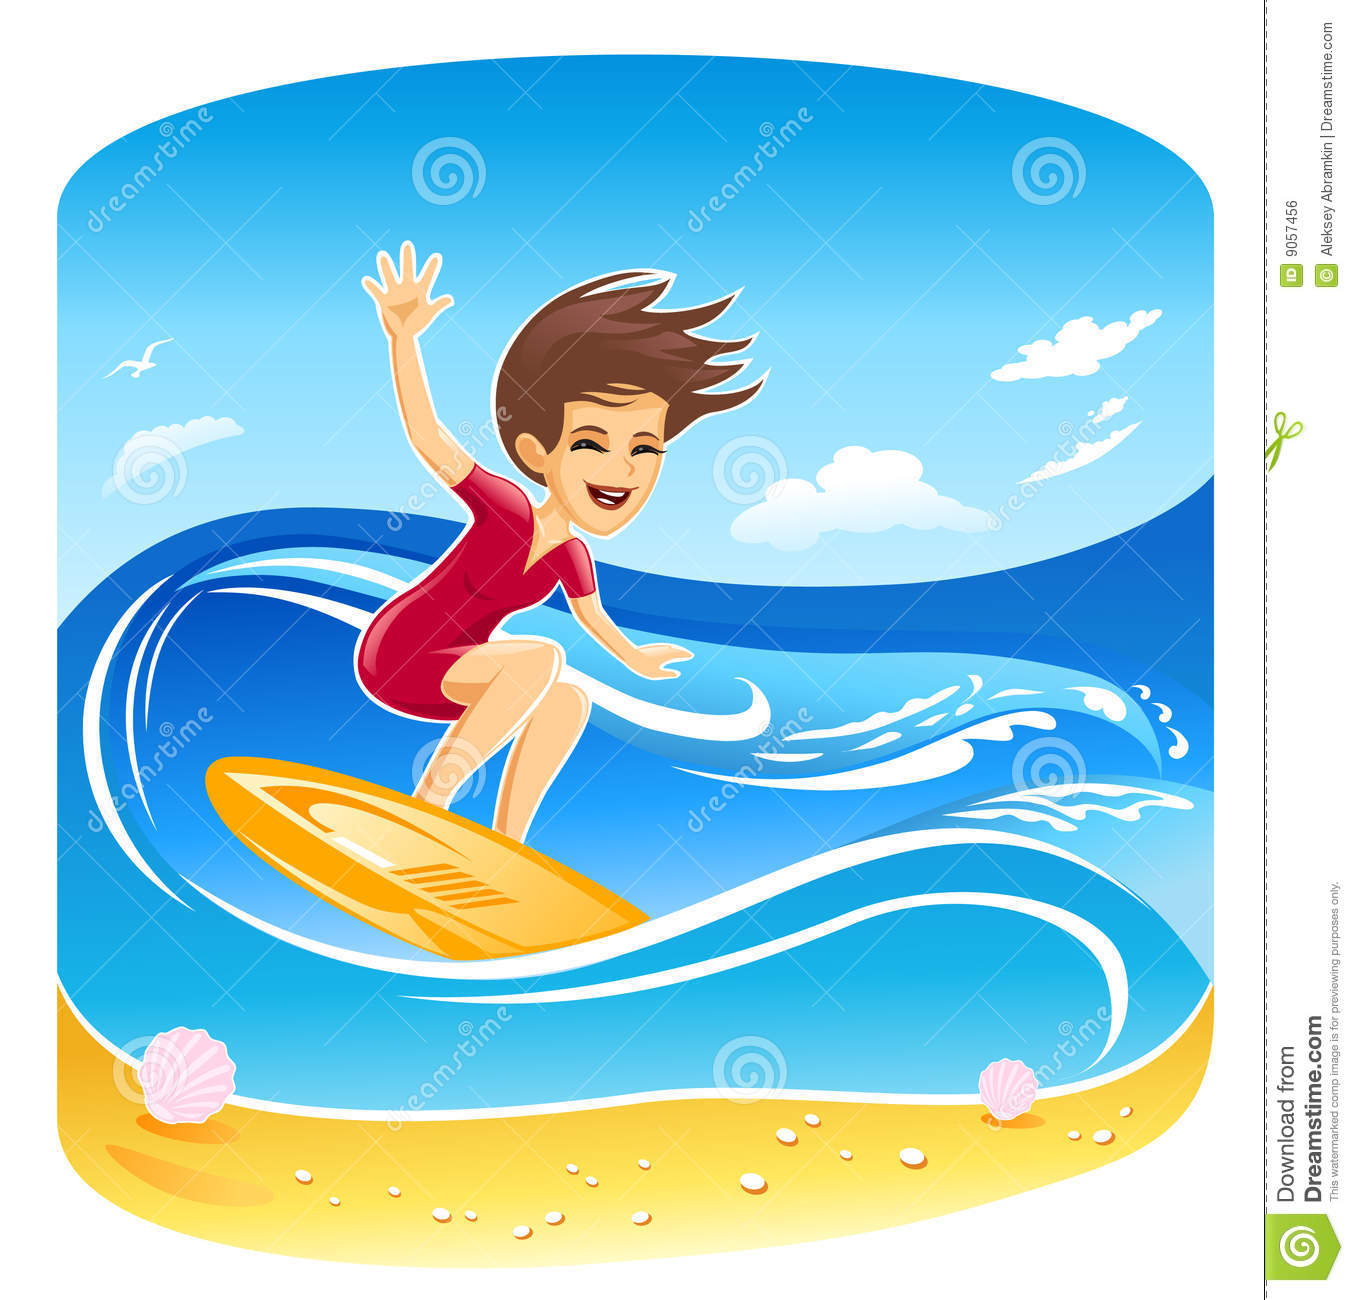 Surfing clipart free 4 » Clipart Station.